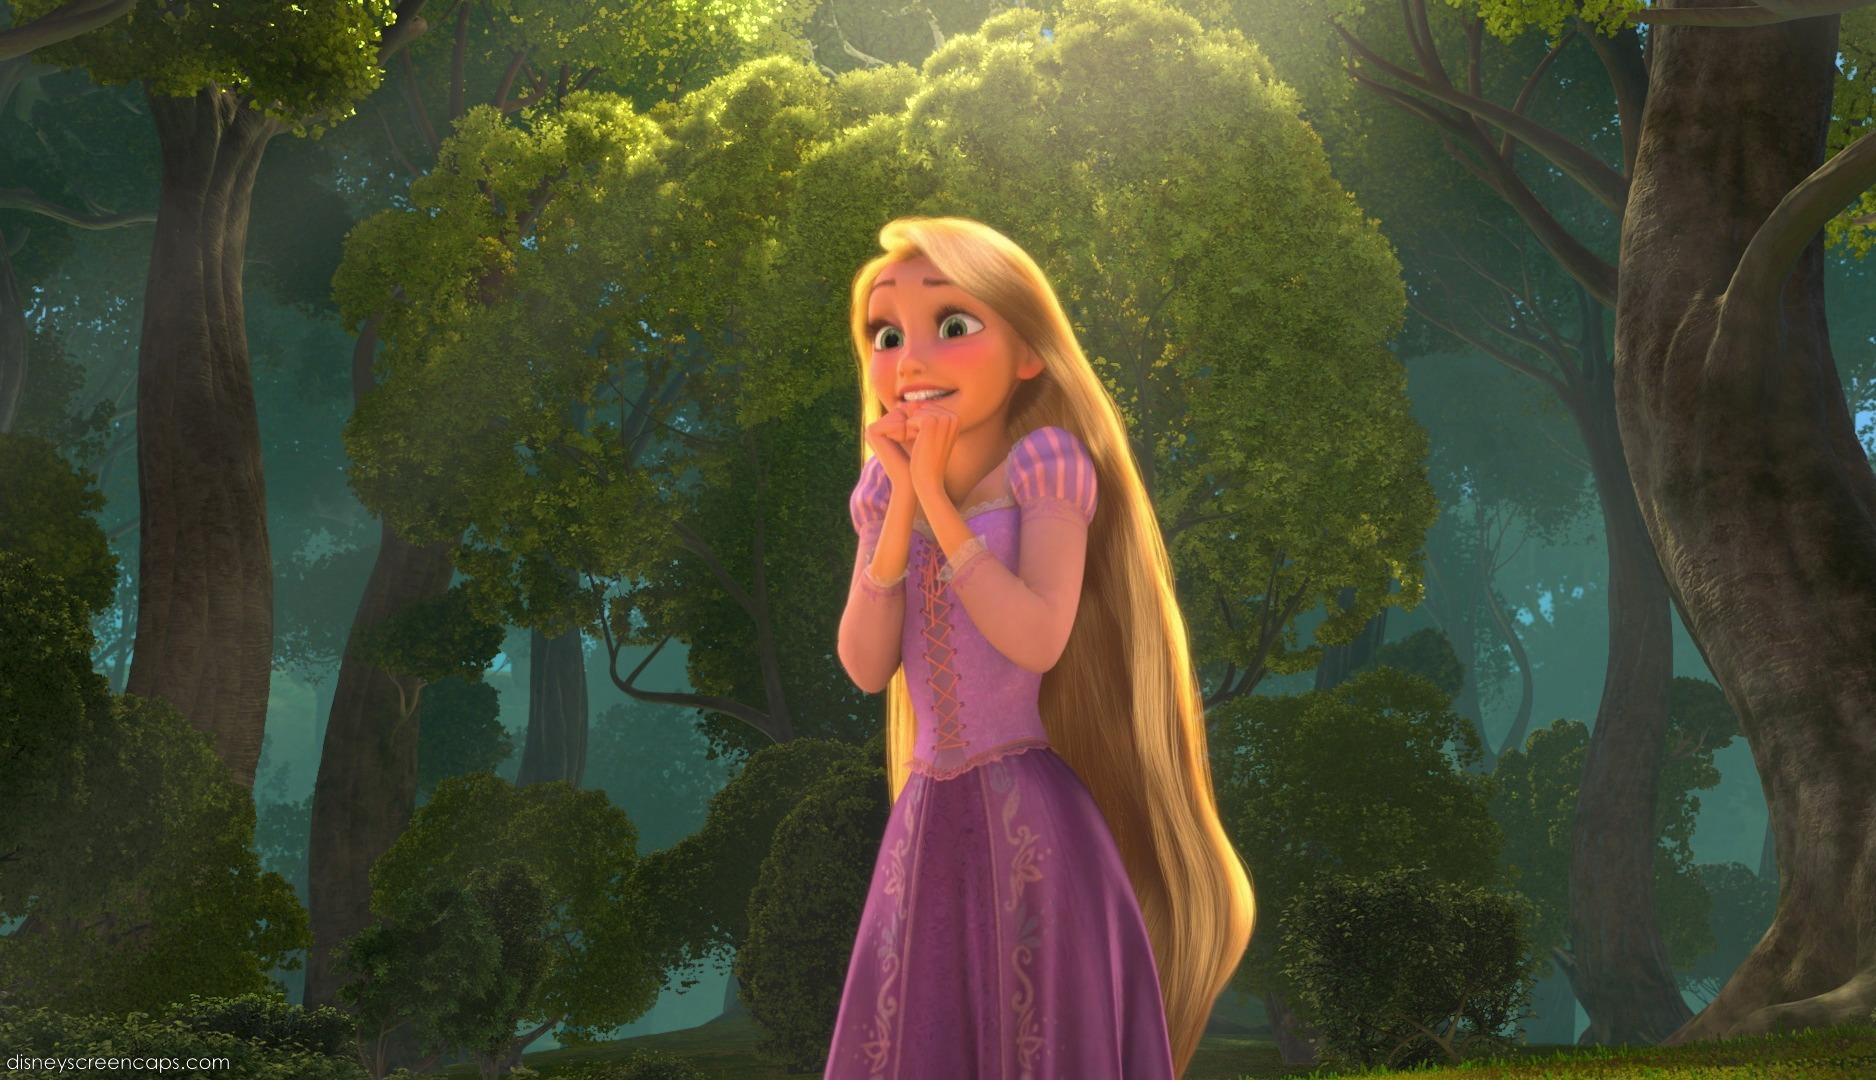 Princess Rapunzel in Tangled-Disney Movie-Wallpaper (double-click to ... for Rapunzel Tangled Full Body  53kxo